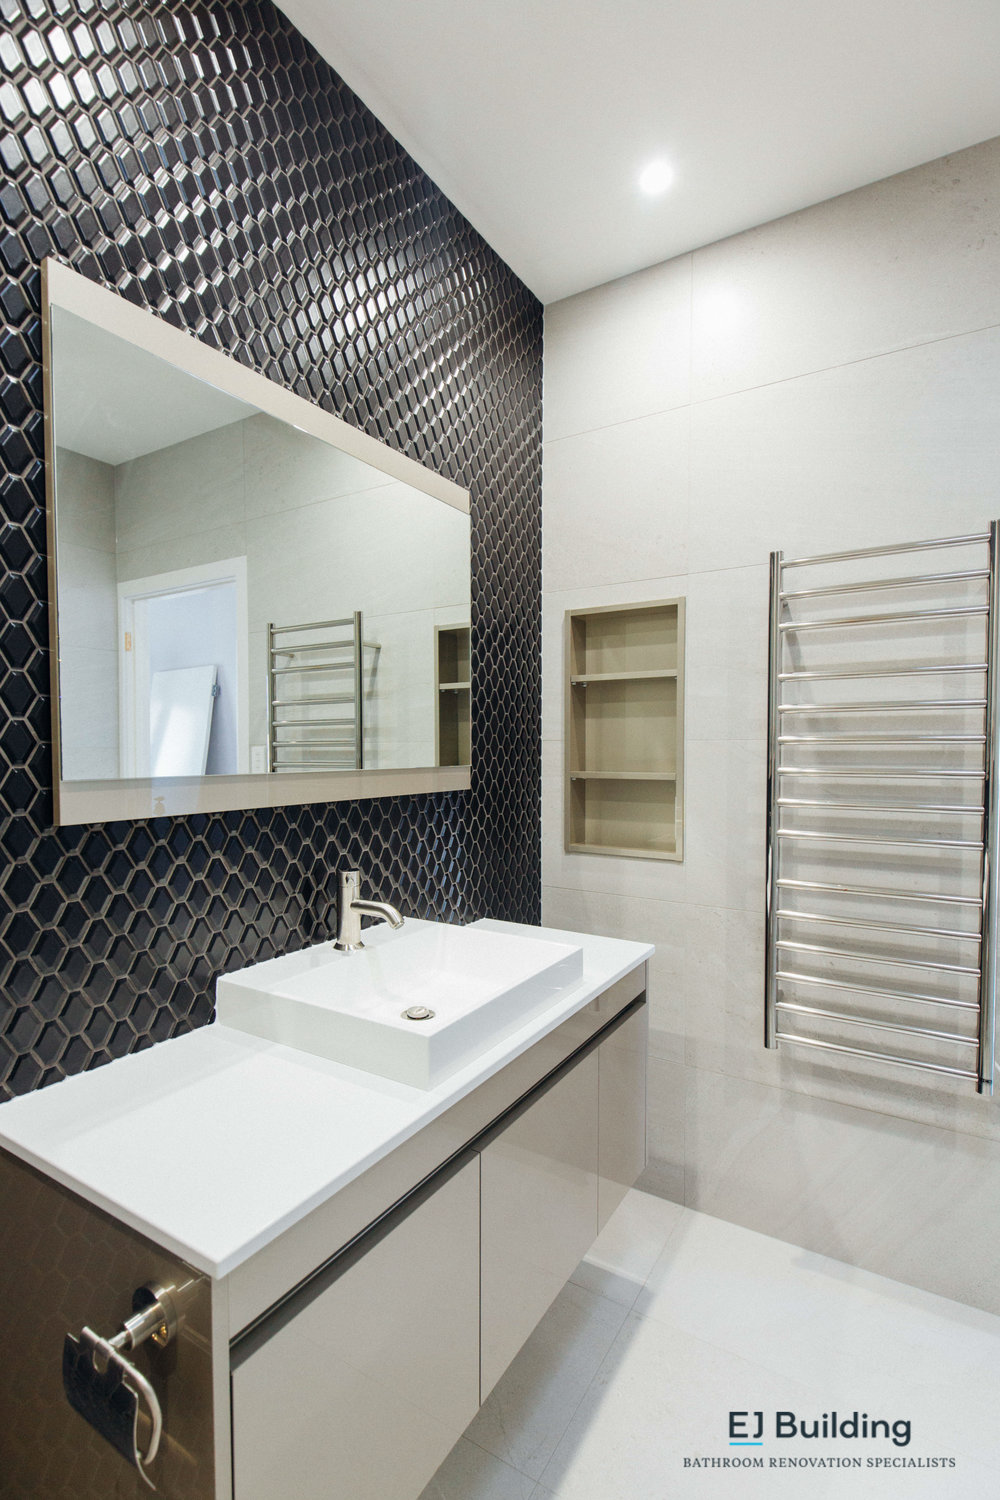 Great idea is to mount you toilet roll holder to your vanity and keep the tiled walls looking nice and clean.